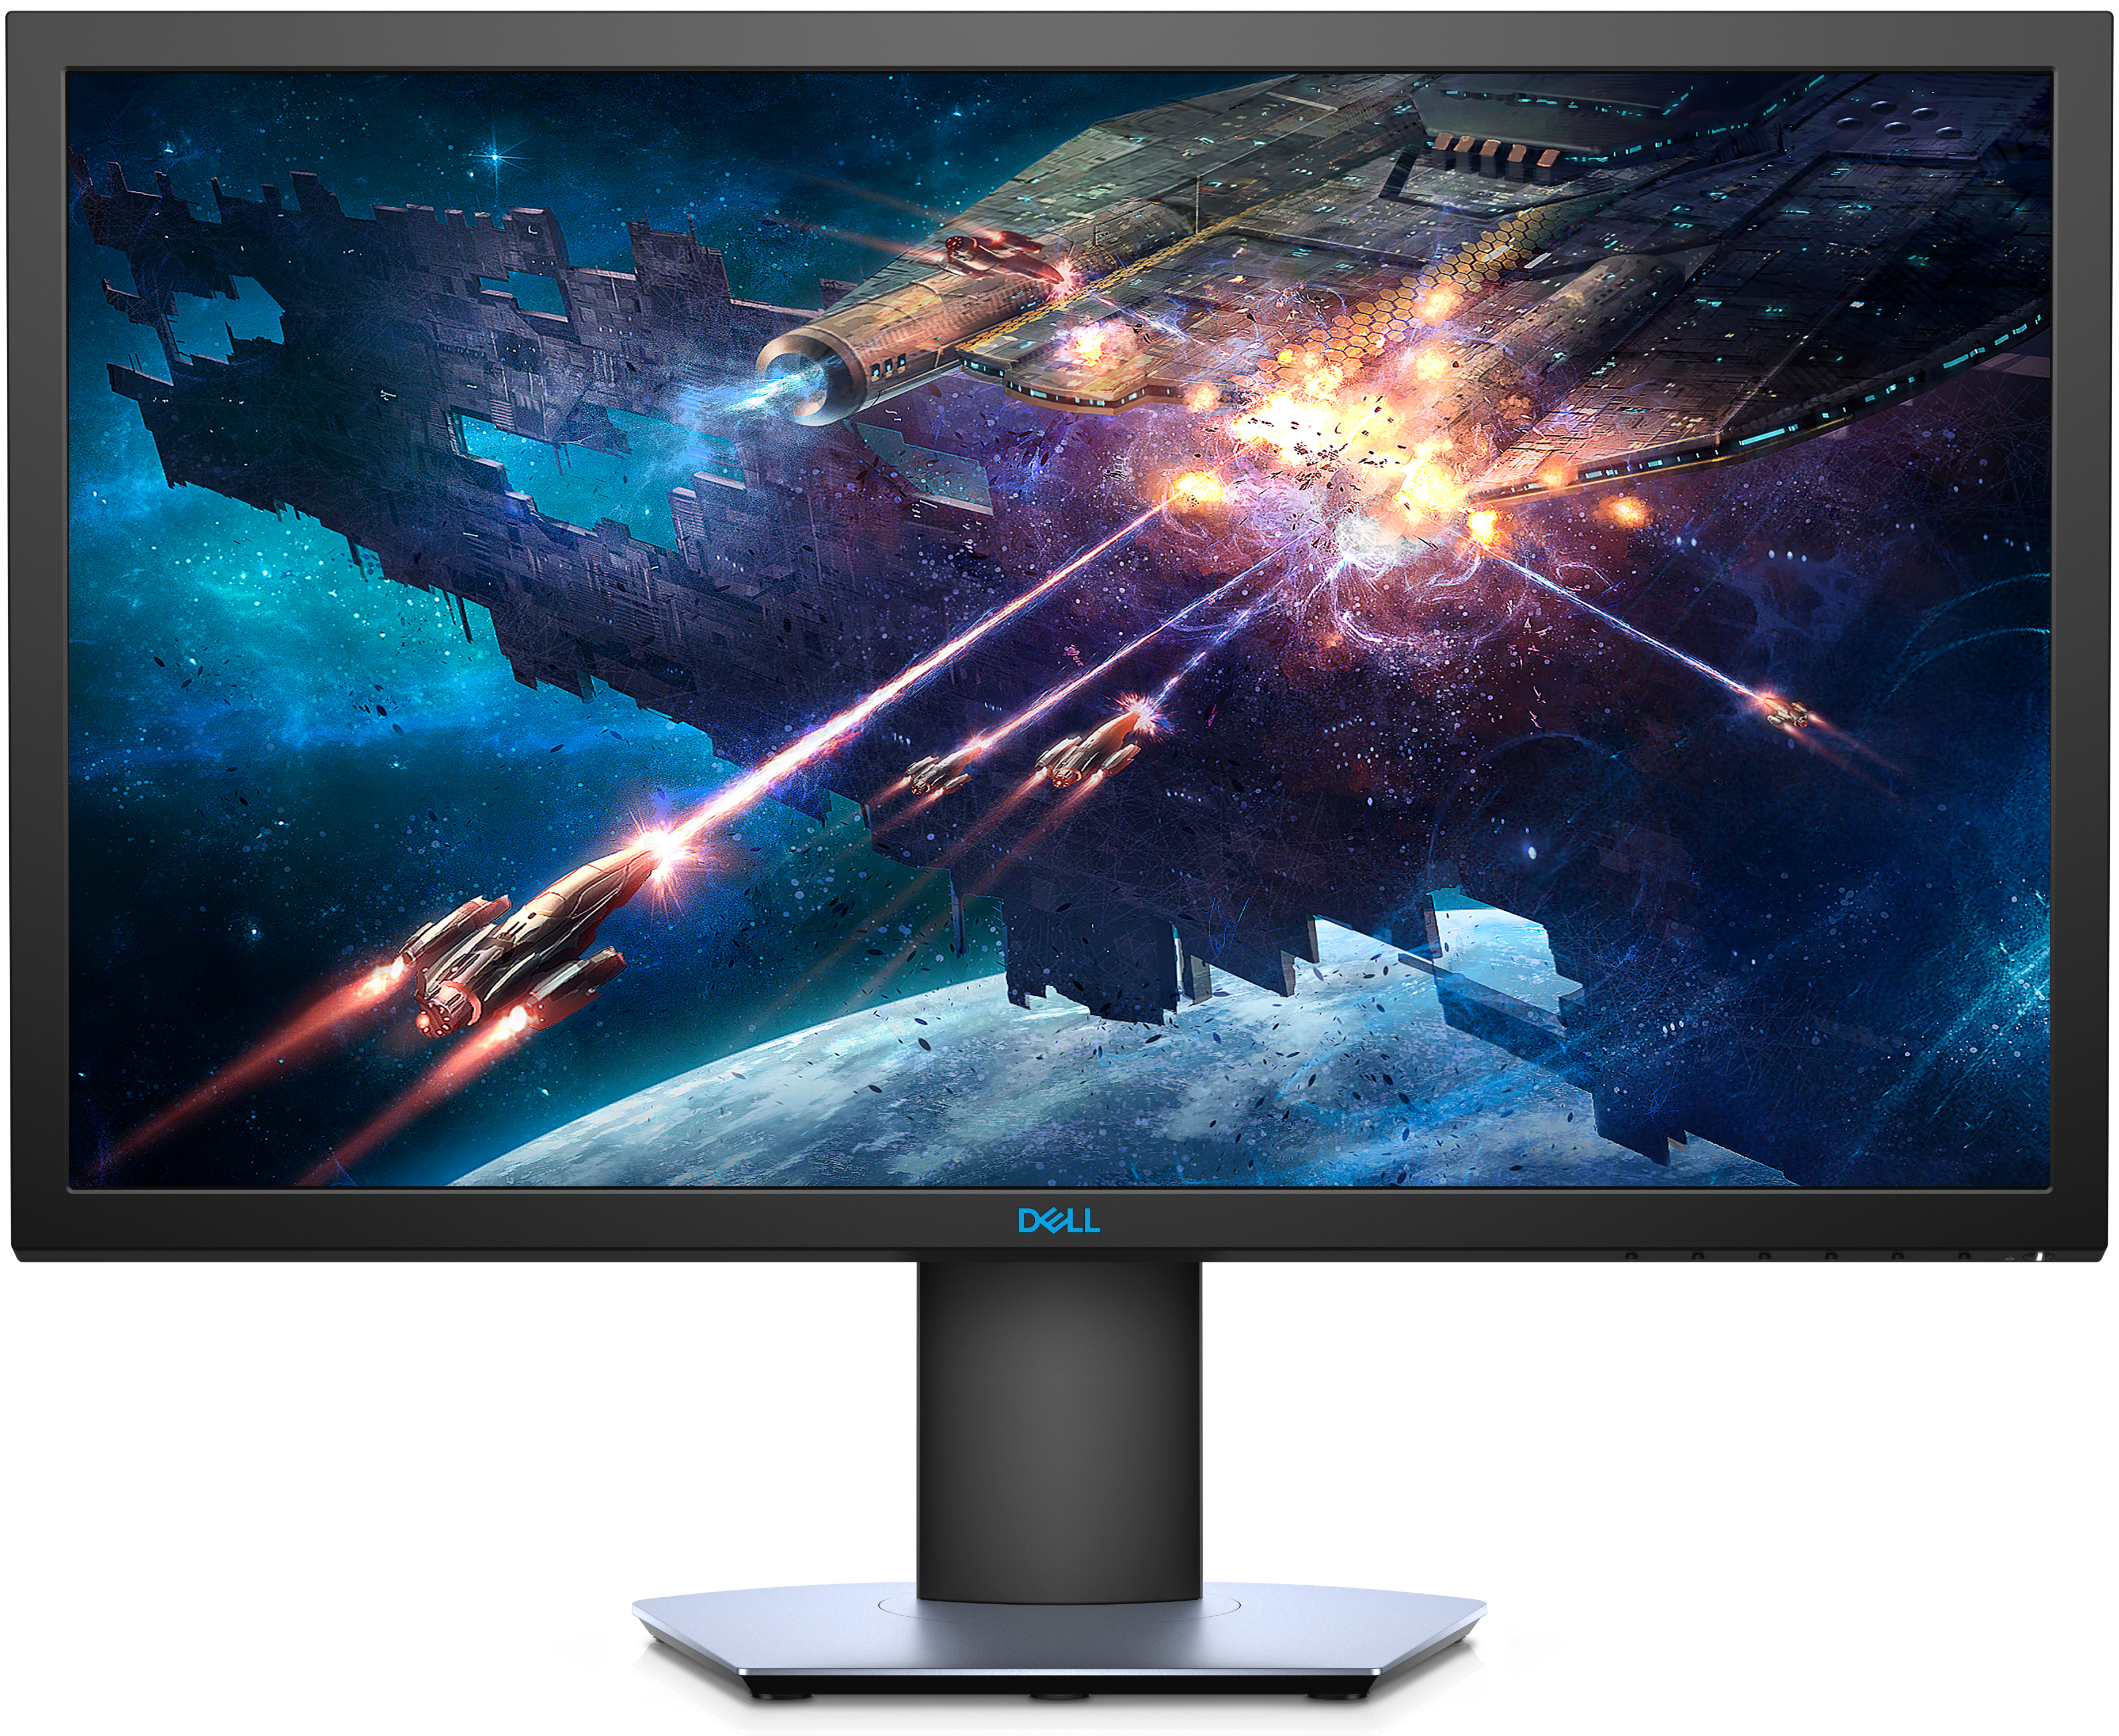 Dell Launches Gaming 24 and Gaming 27 Displays: 1 ms Response, 144